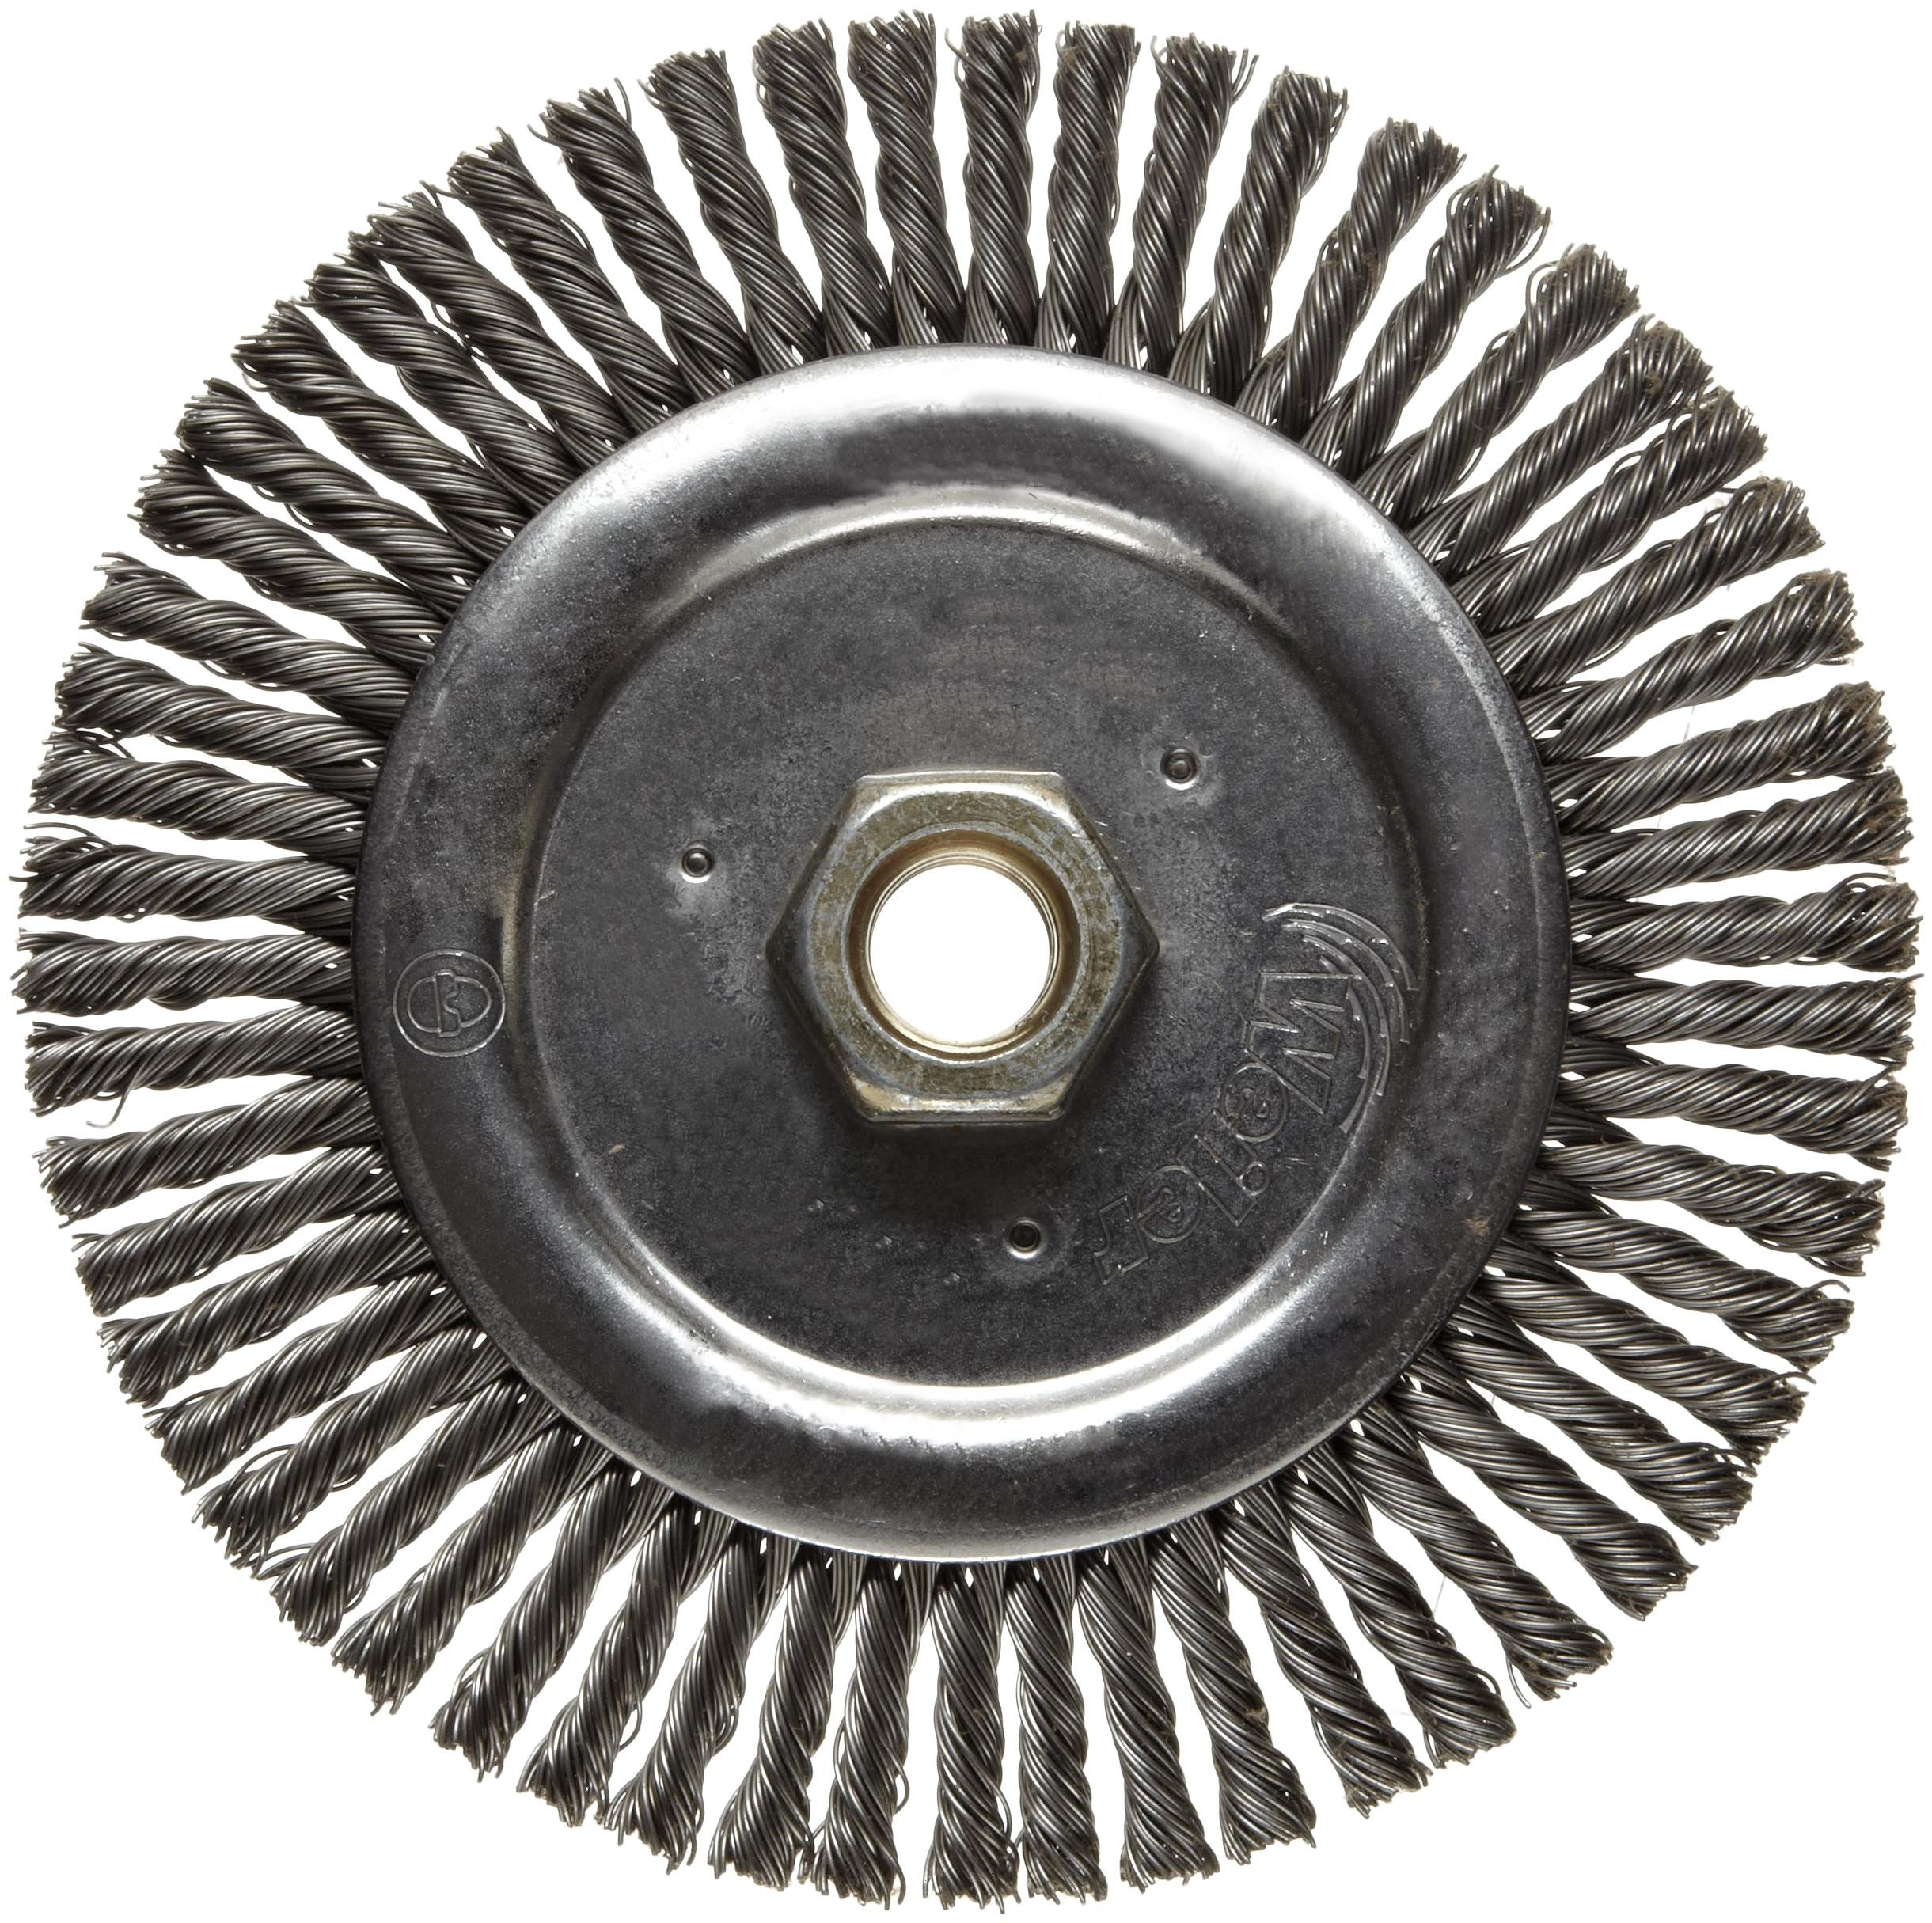 Weiler Dualife Narrow Face Wire Wheel Brush, Threaded Hole, Steel, Stringer Knotted, 6'' Diameter, 0.020'' Wire Diameter, 5/8-11'' Arbor, 1-1/8'' Bristle Length, 3/16'' Brush Face Width, 12500 rpm